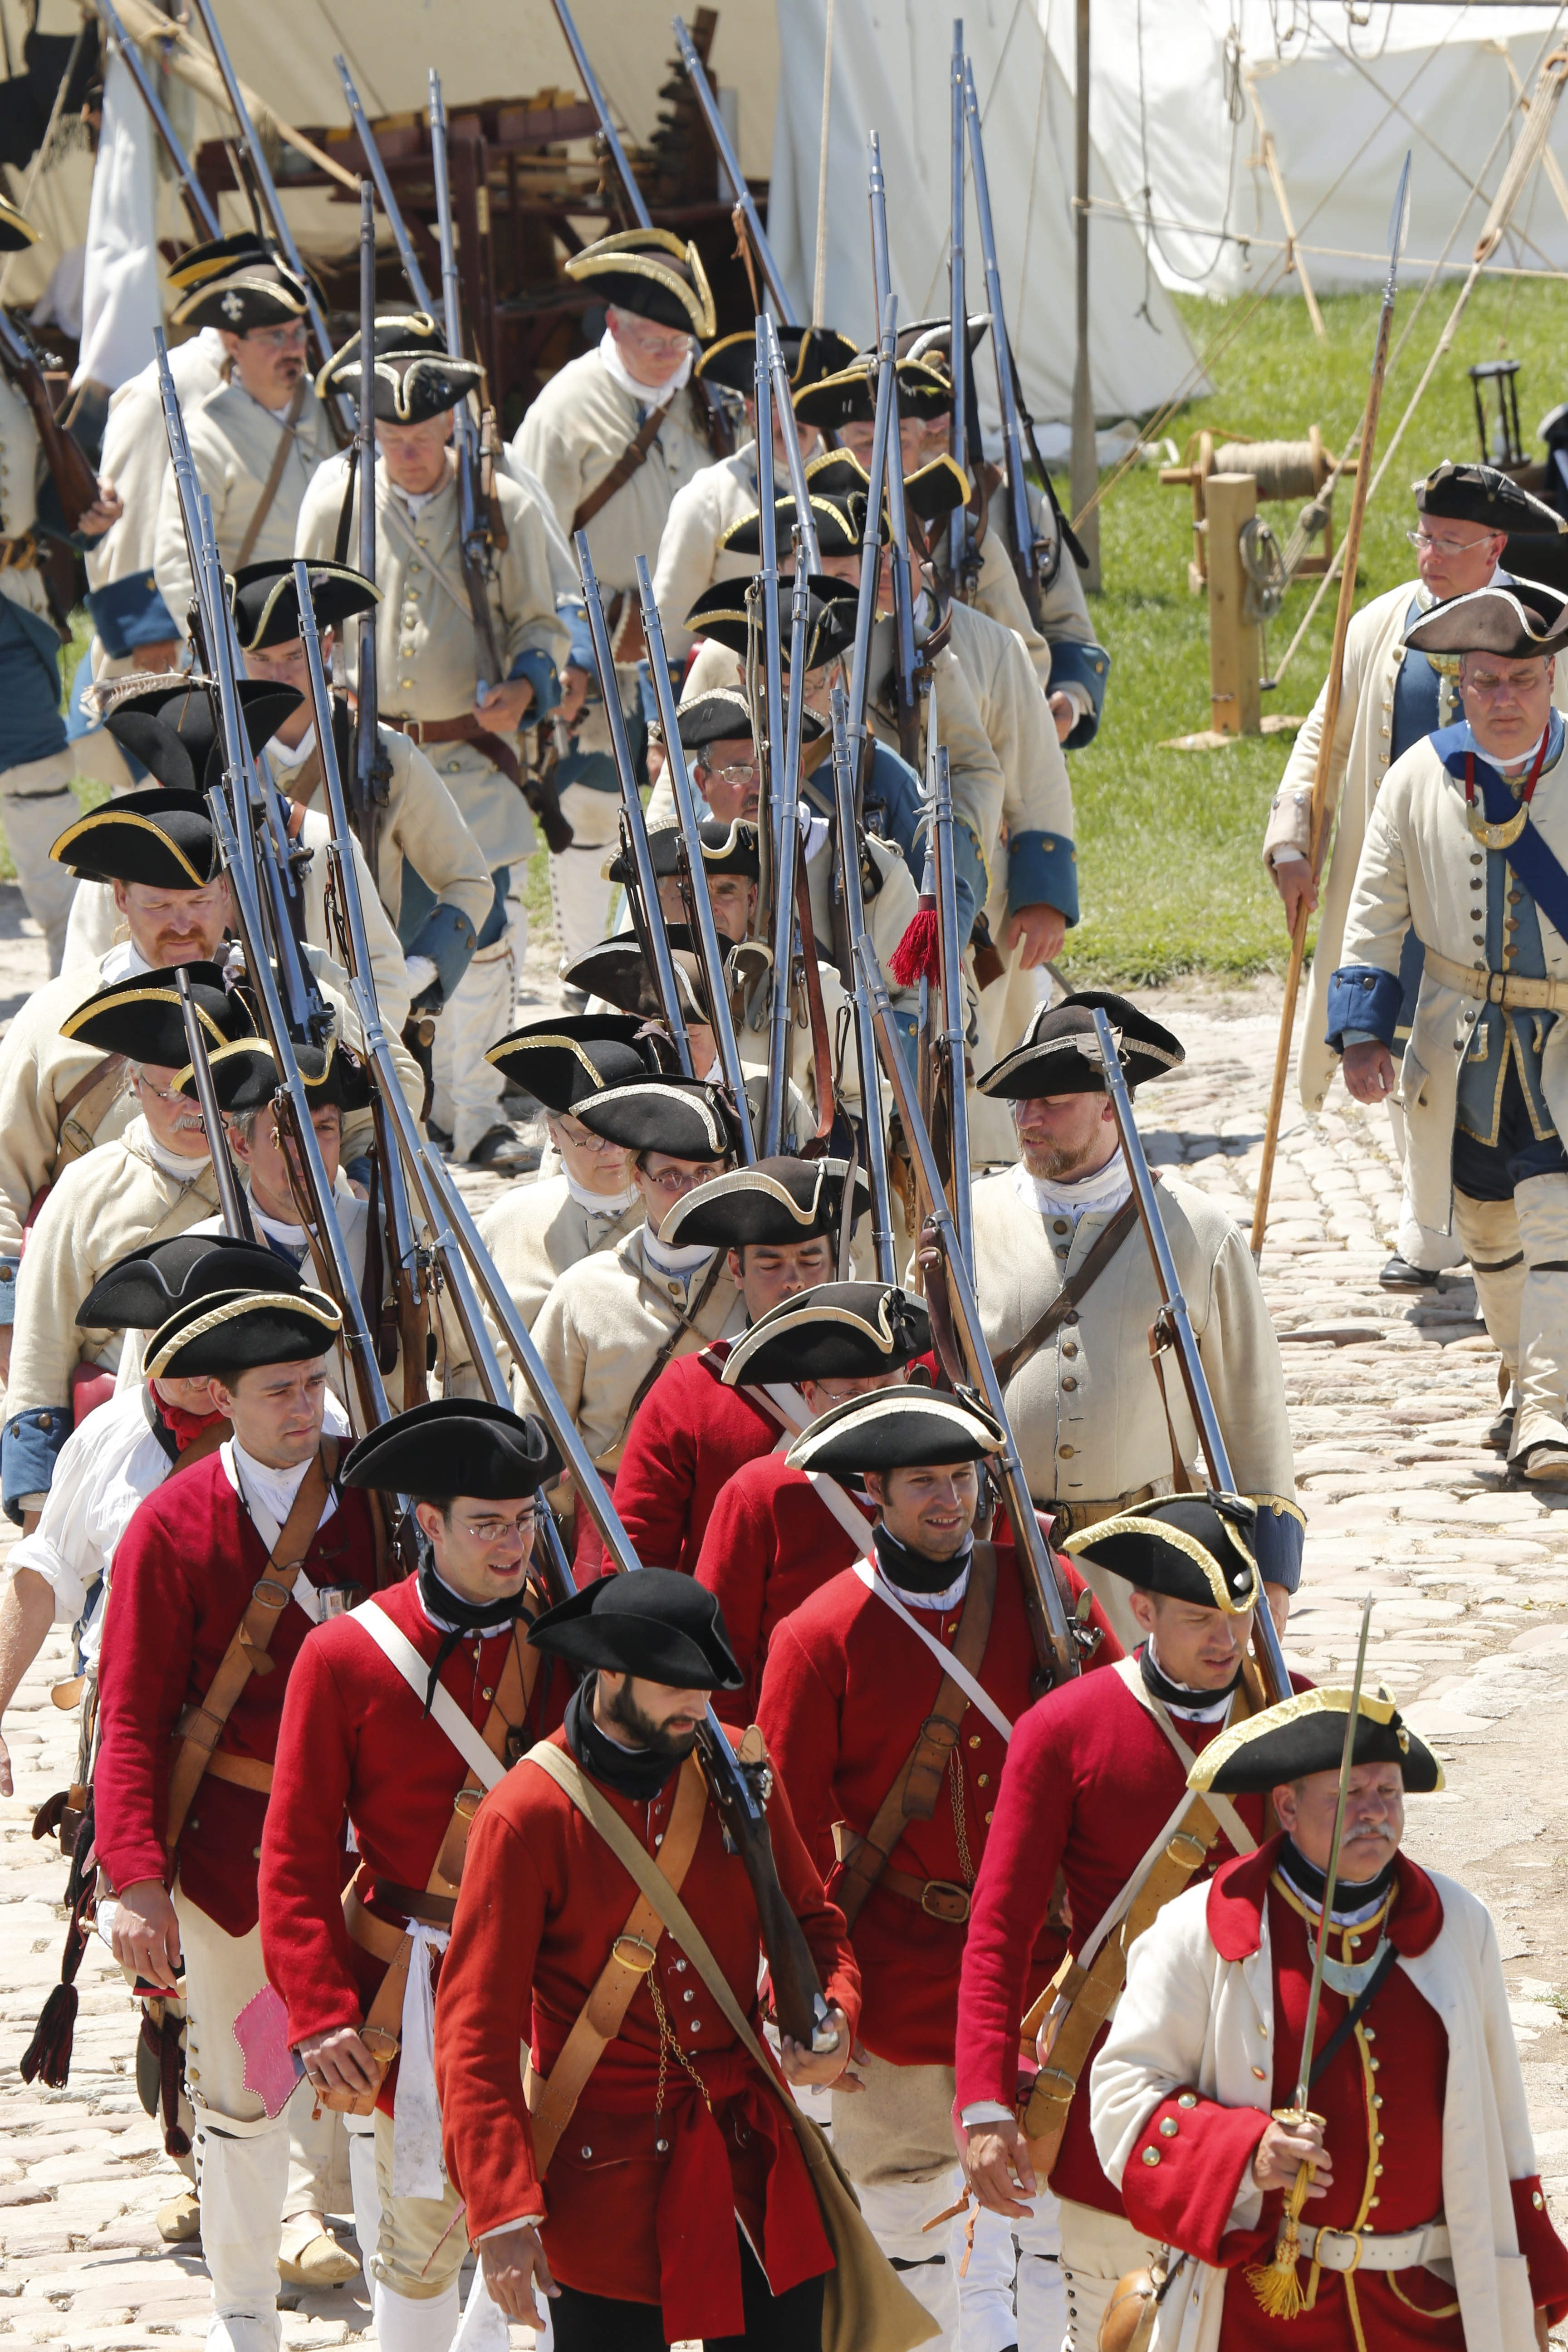 Re-enactors in period uniforms will parade across the fort's lawn and present their colors in a ceremony.